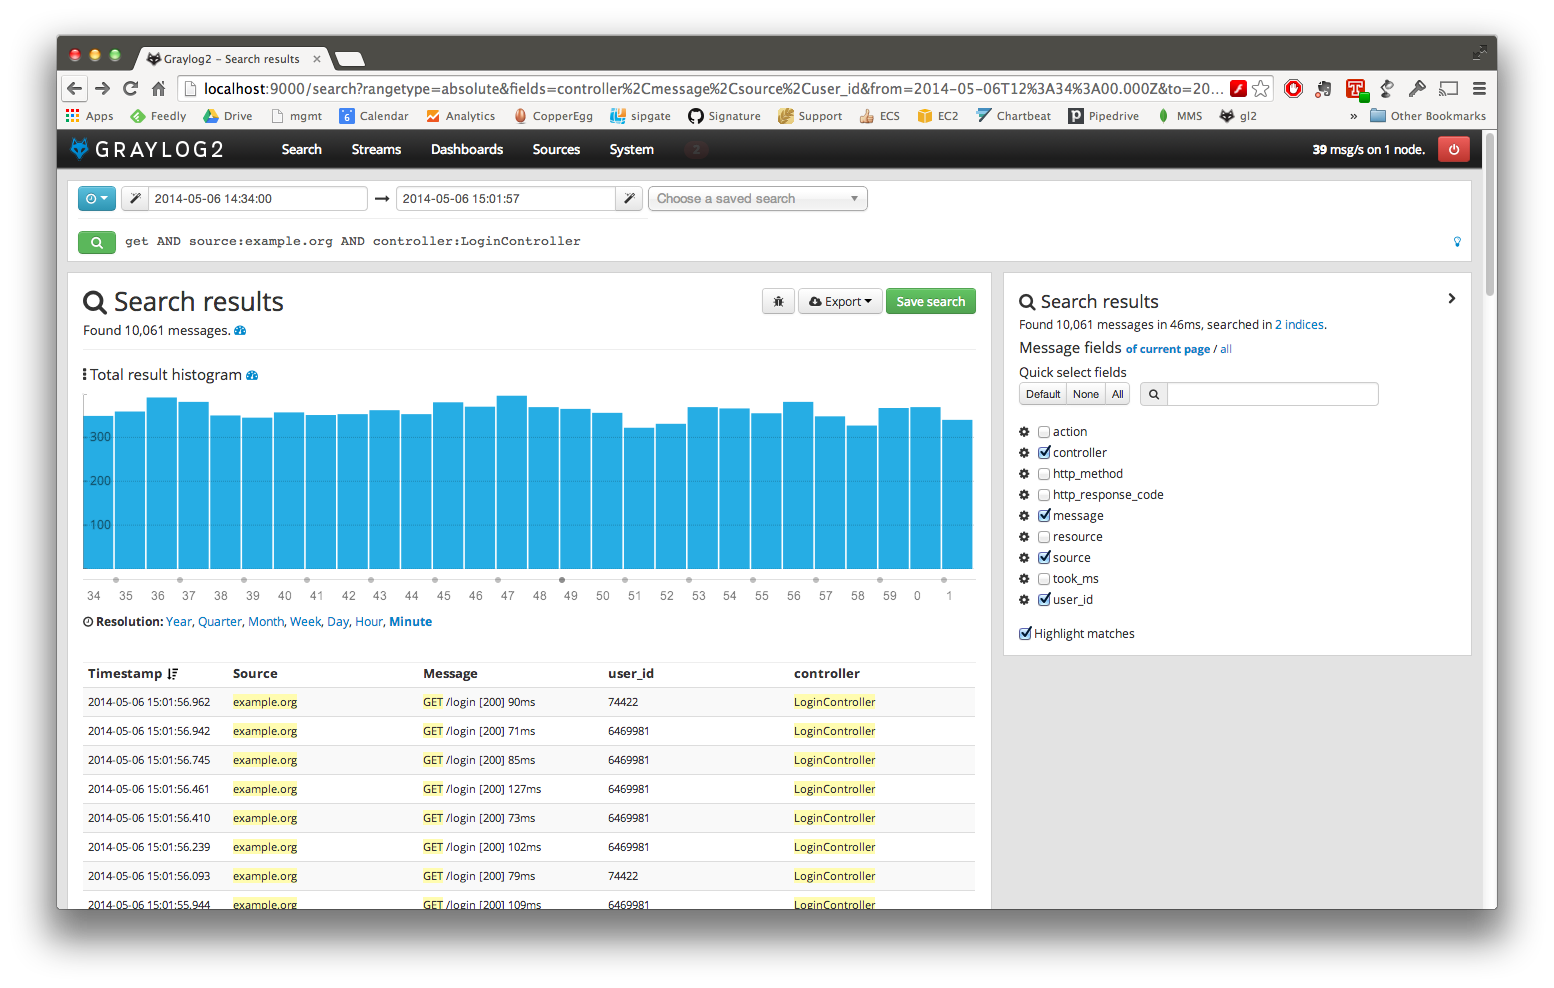 graylog2-highlight